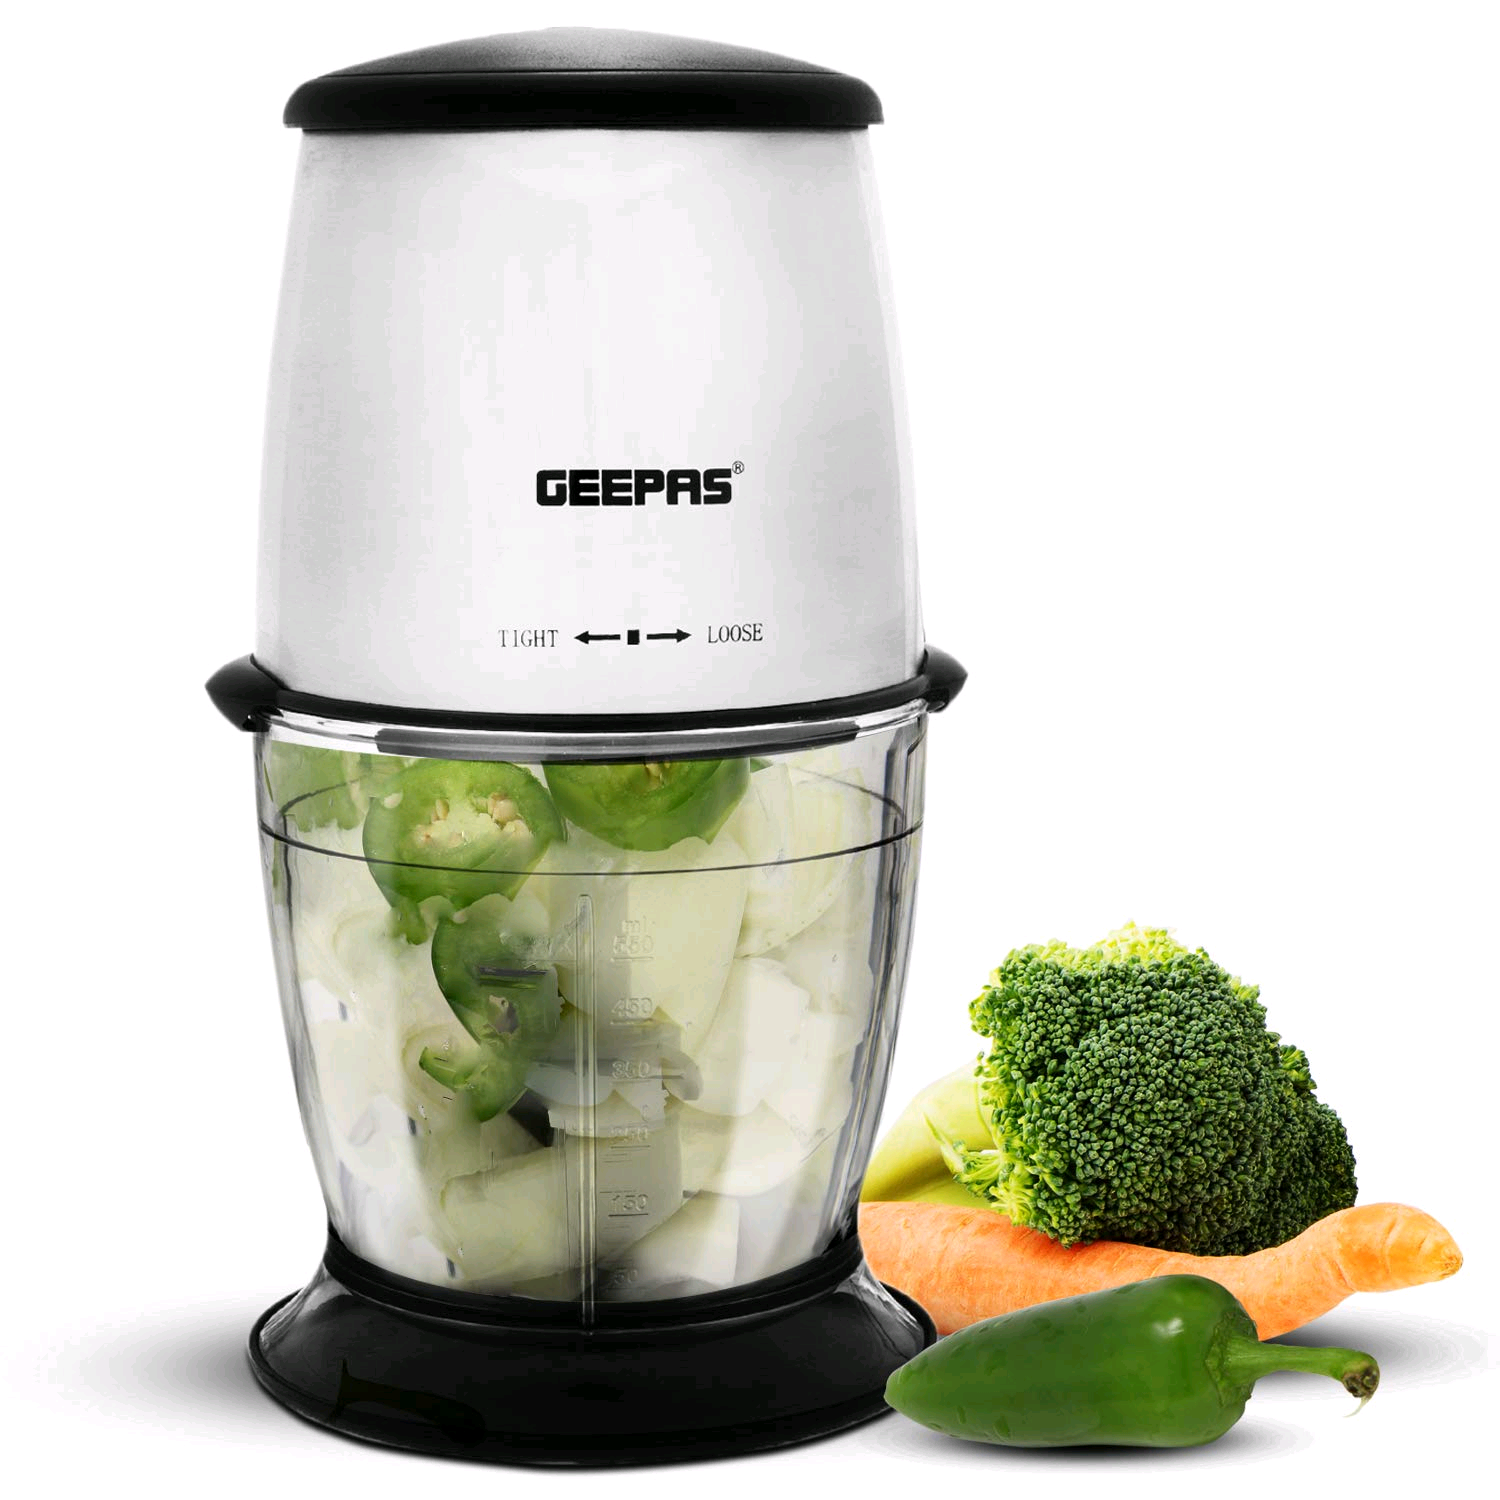 Geepas GMC42013UK 300W Mini Food Processor � 550ML Capacity, Stainless Steel Double Blade for Blending & Chopping Chopper Shredder, Perfect Salads, Salsa, Pesto, Curry Pastes More